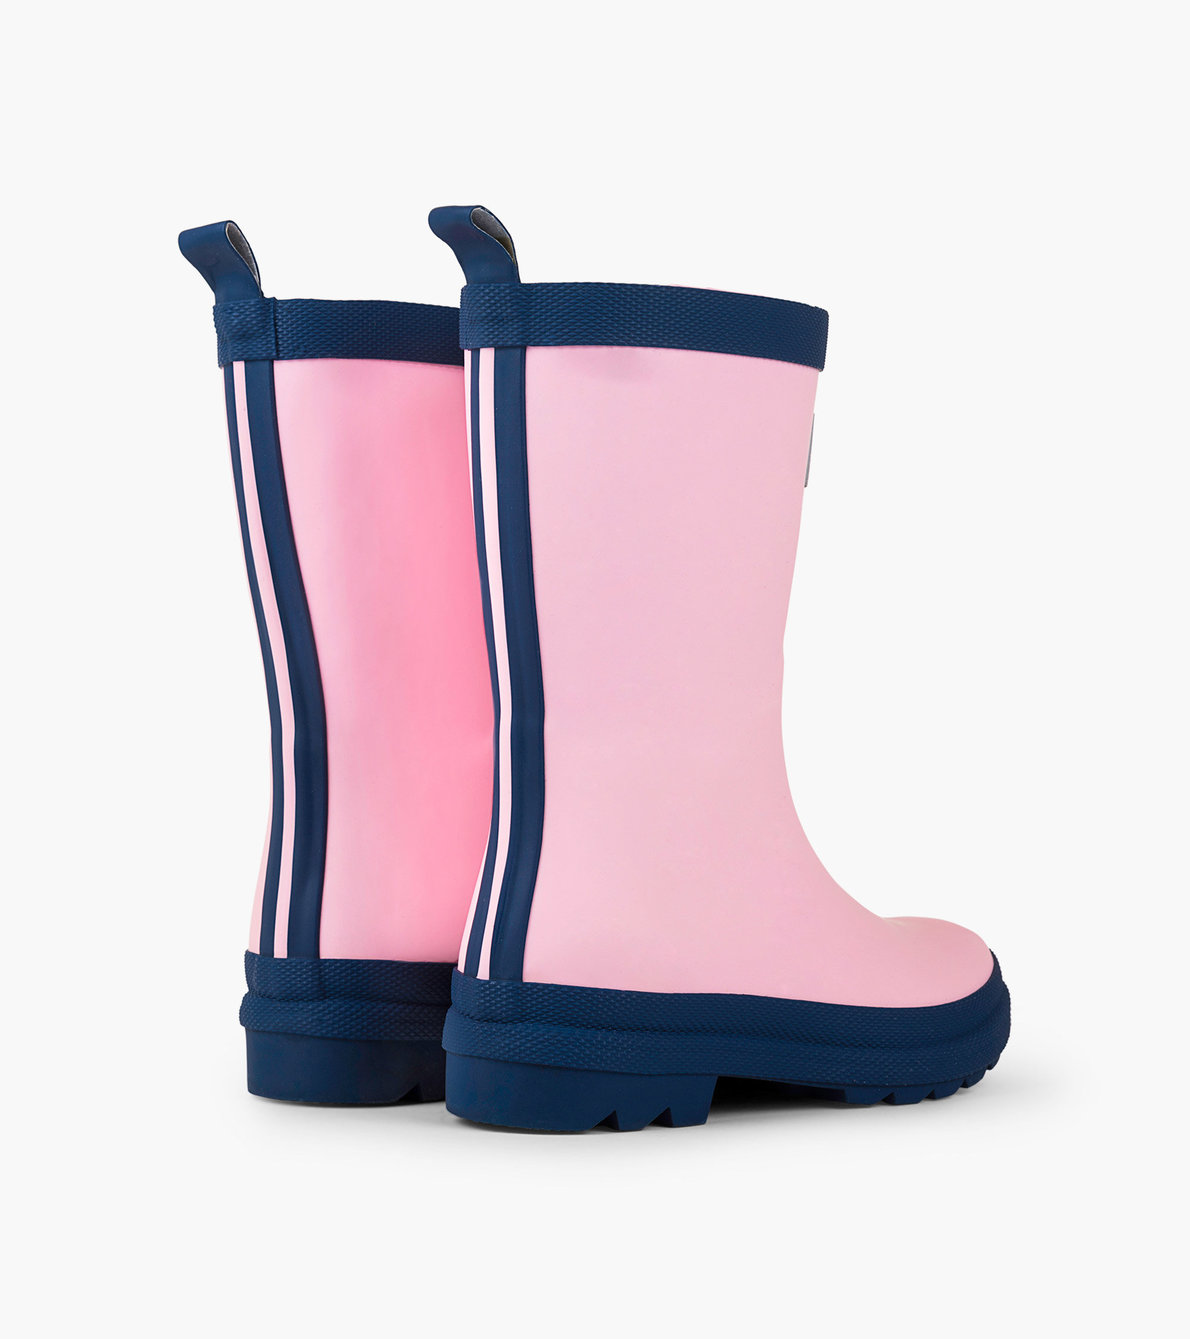 View larger image of Pink & Navy Matte Rain Boots